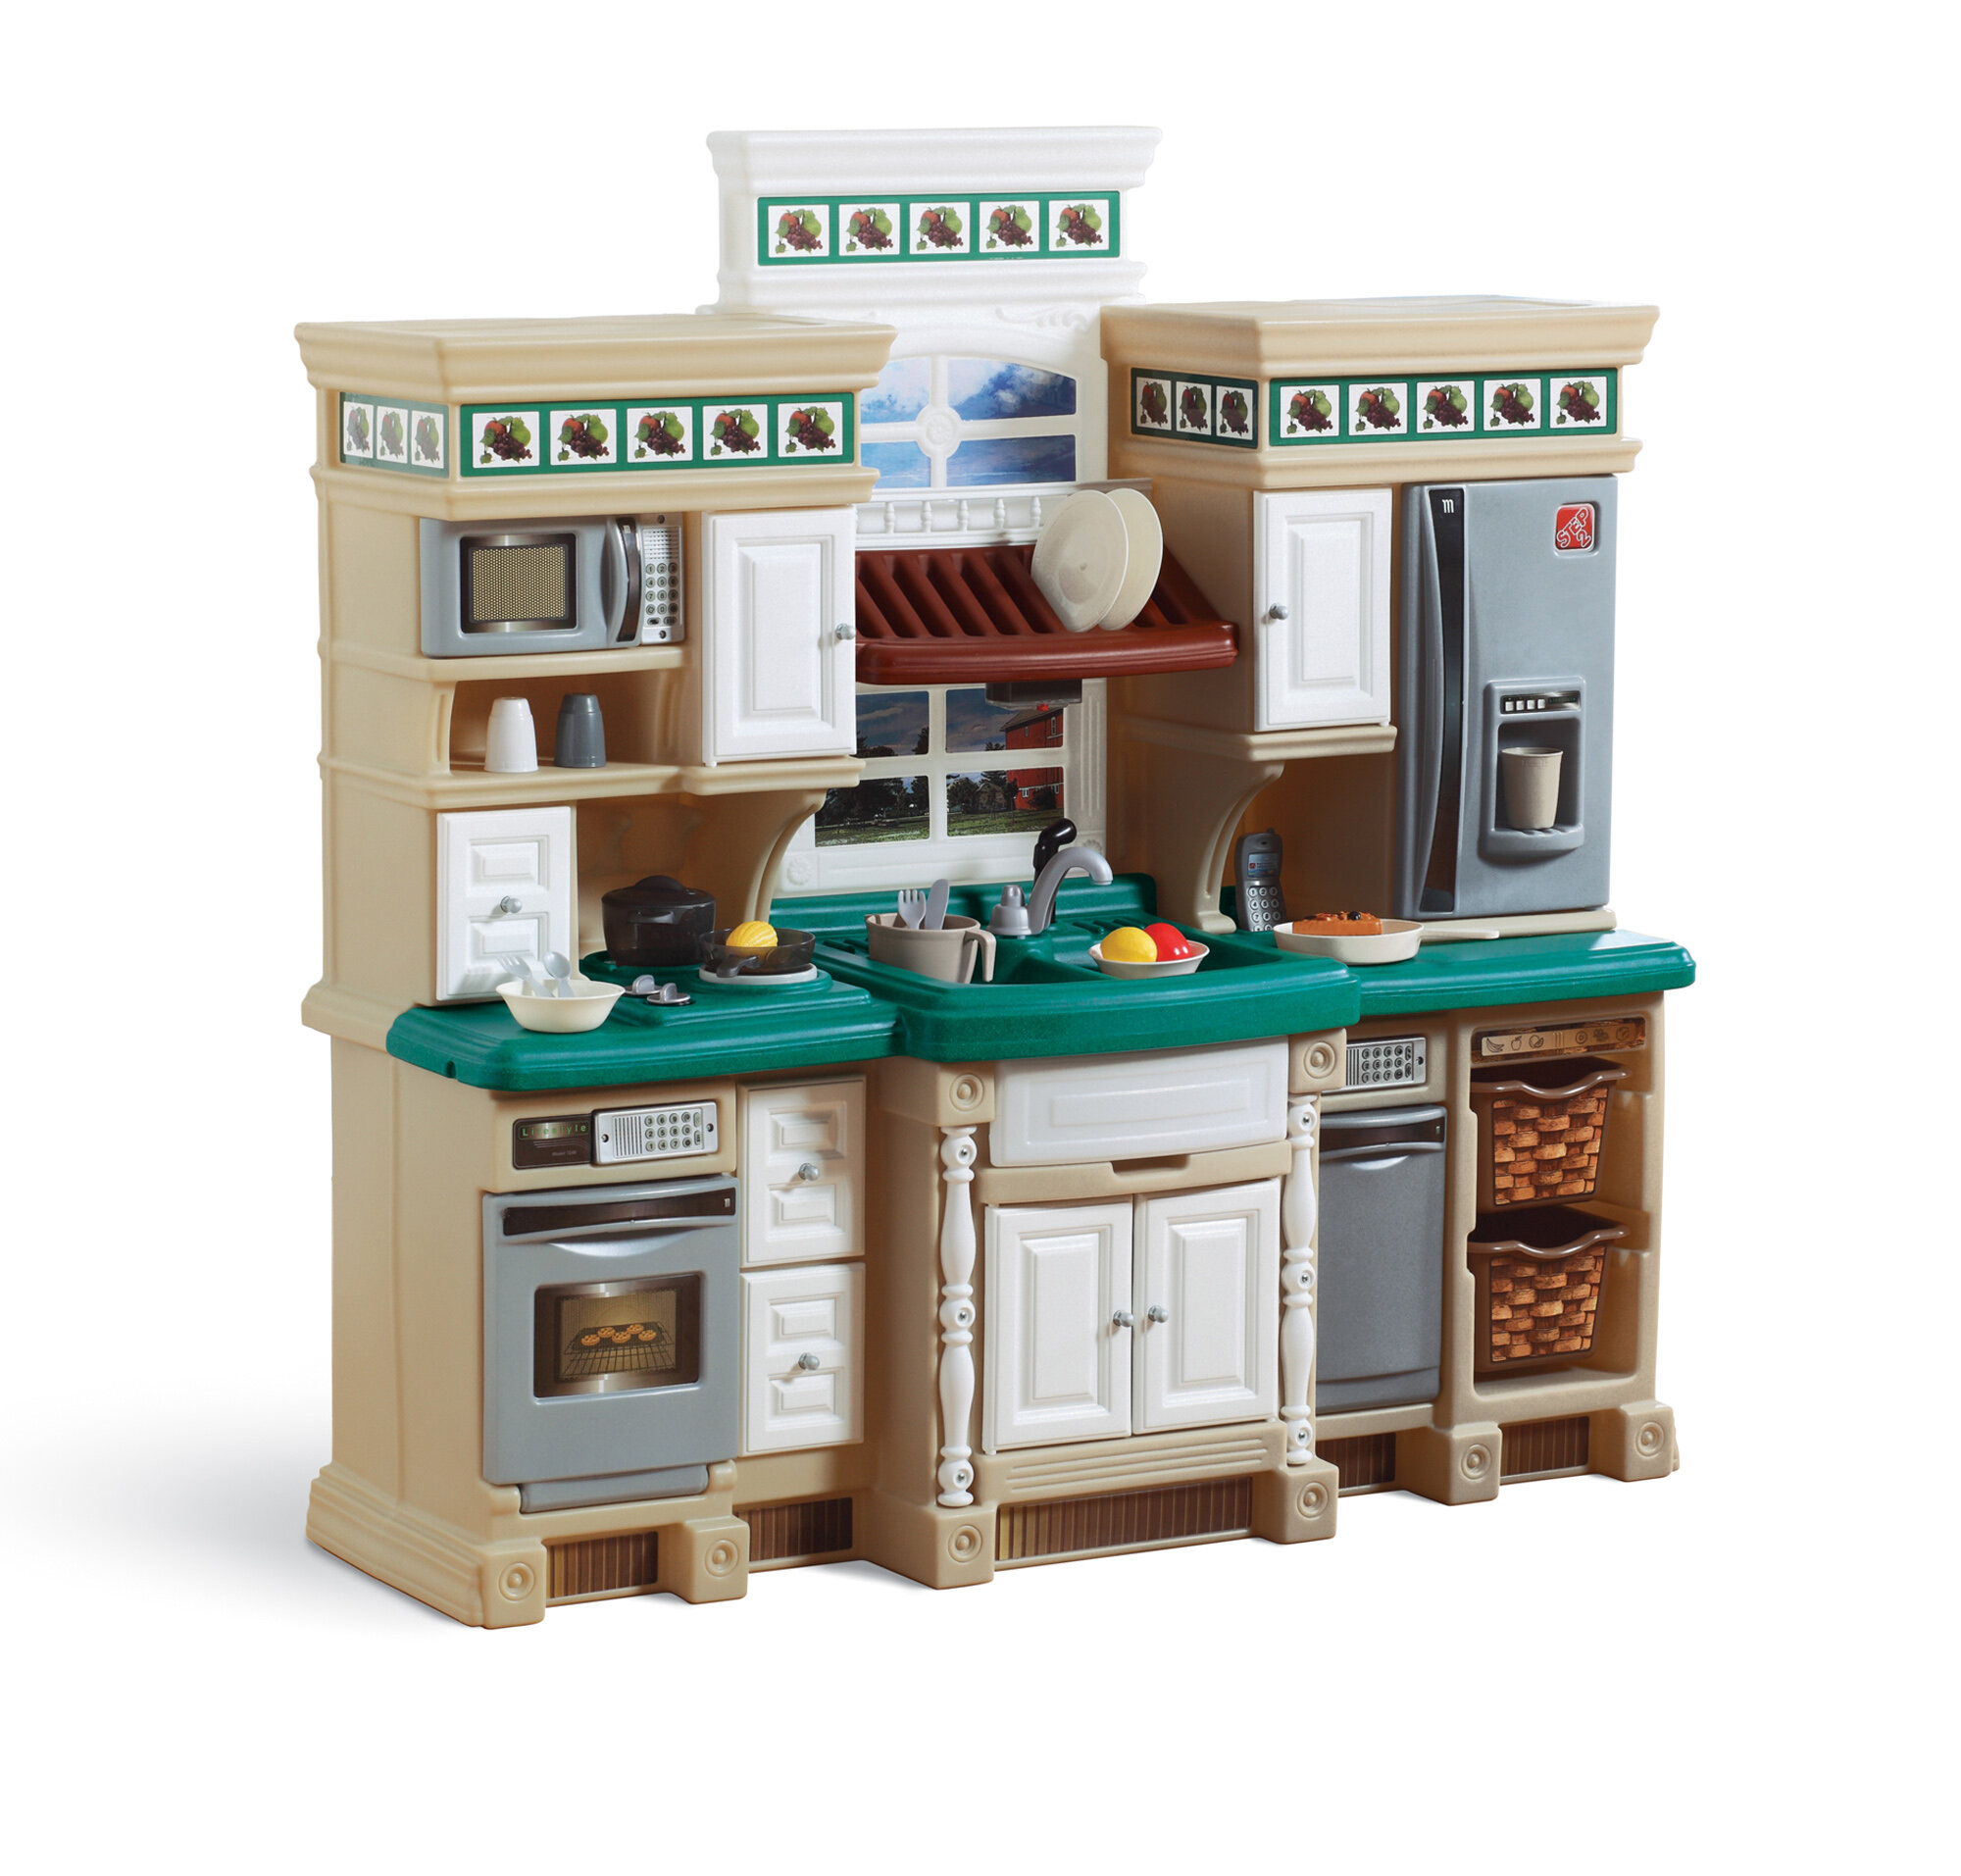 Step2 Lifestyle Deluxe Kitchen Set Ebay